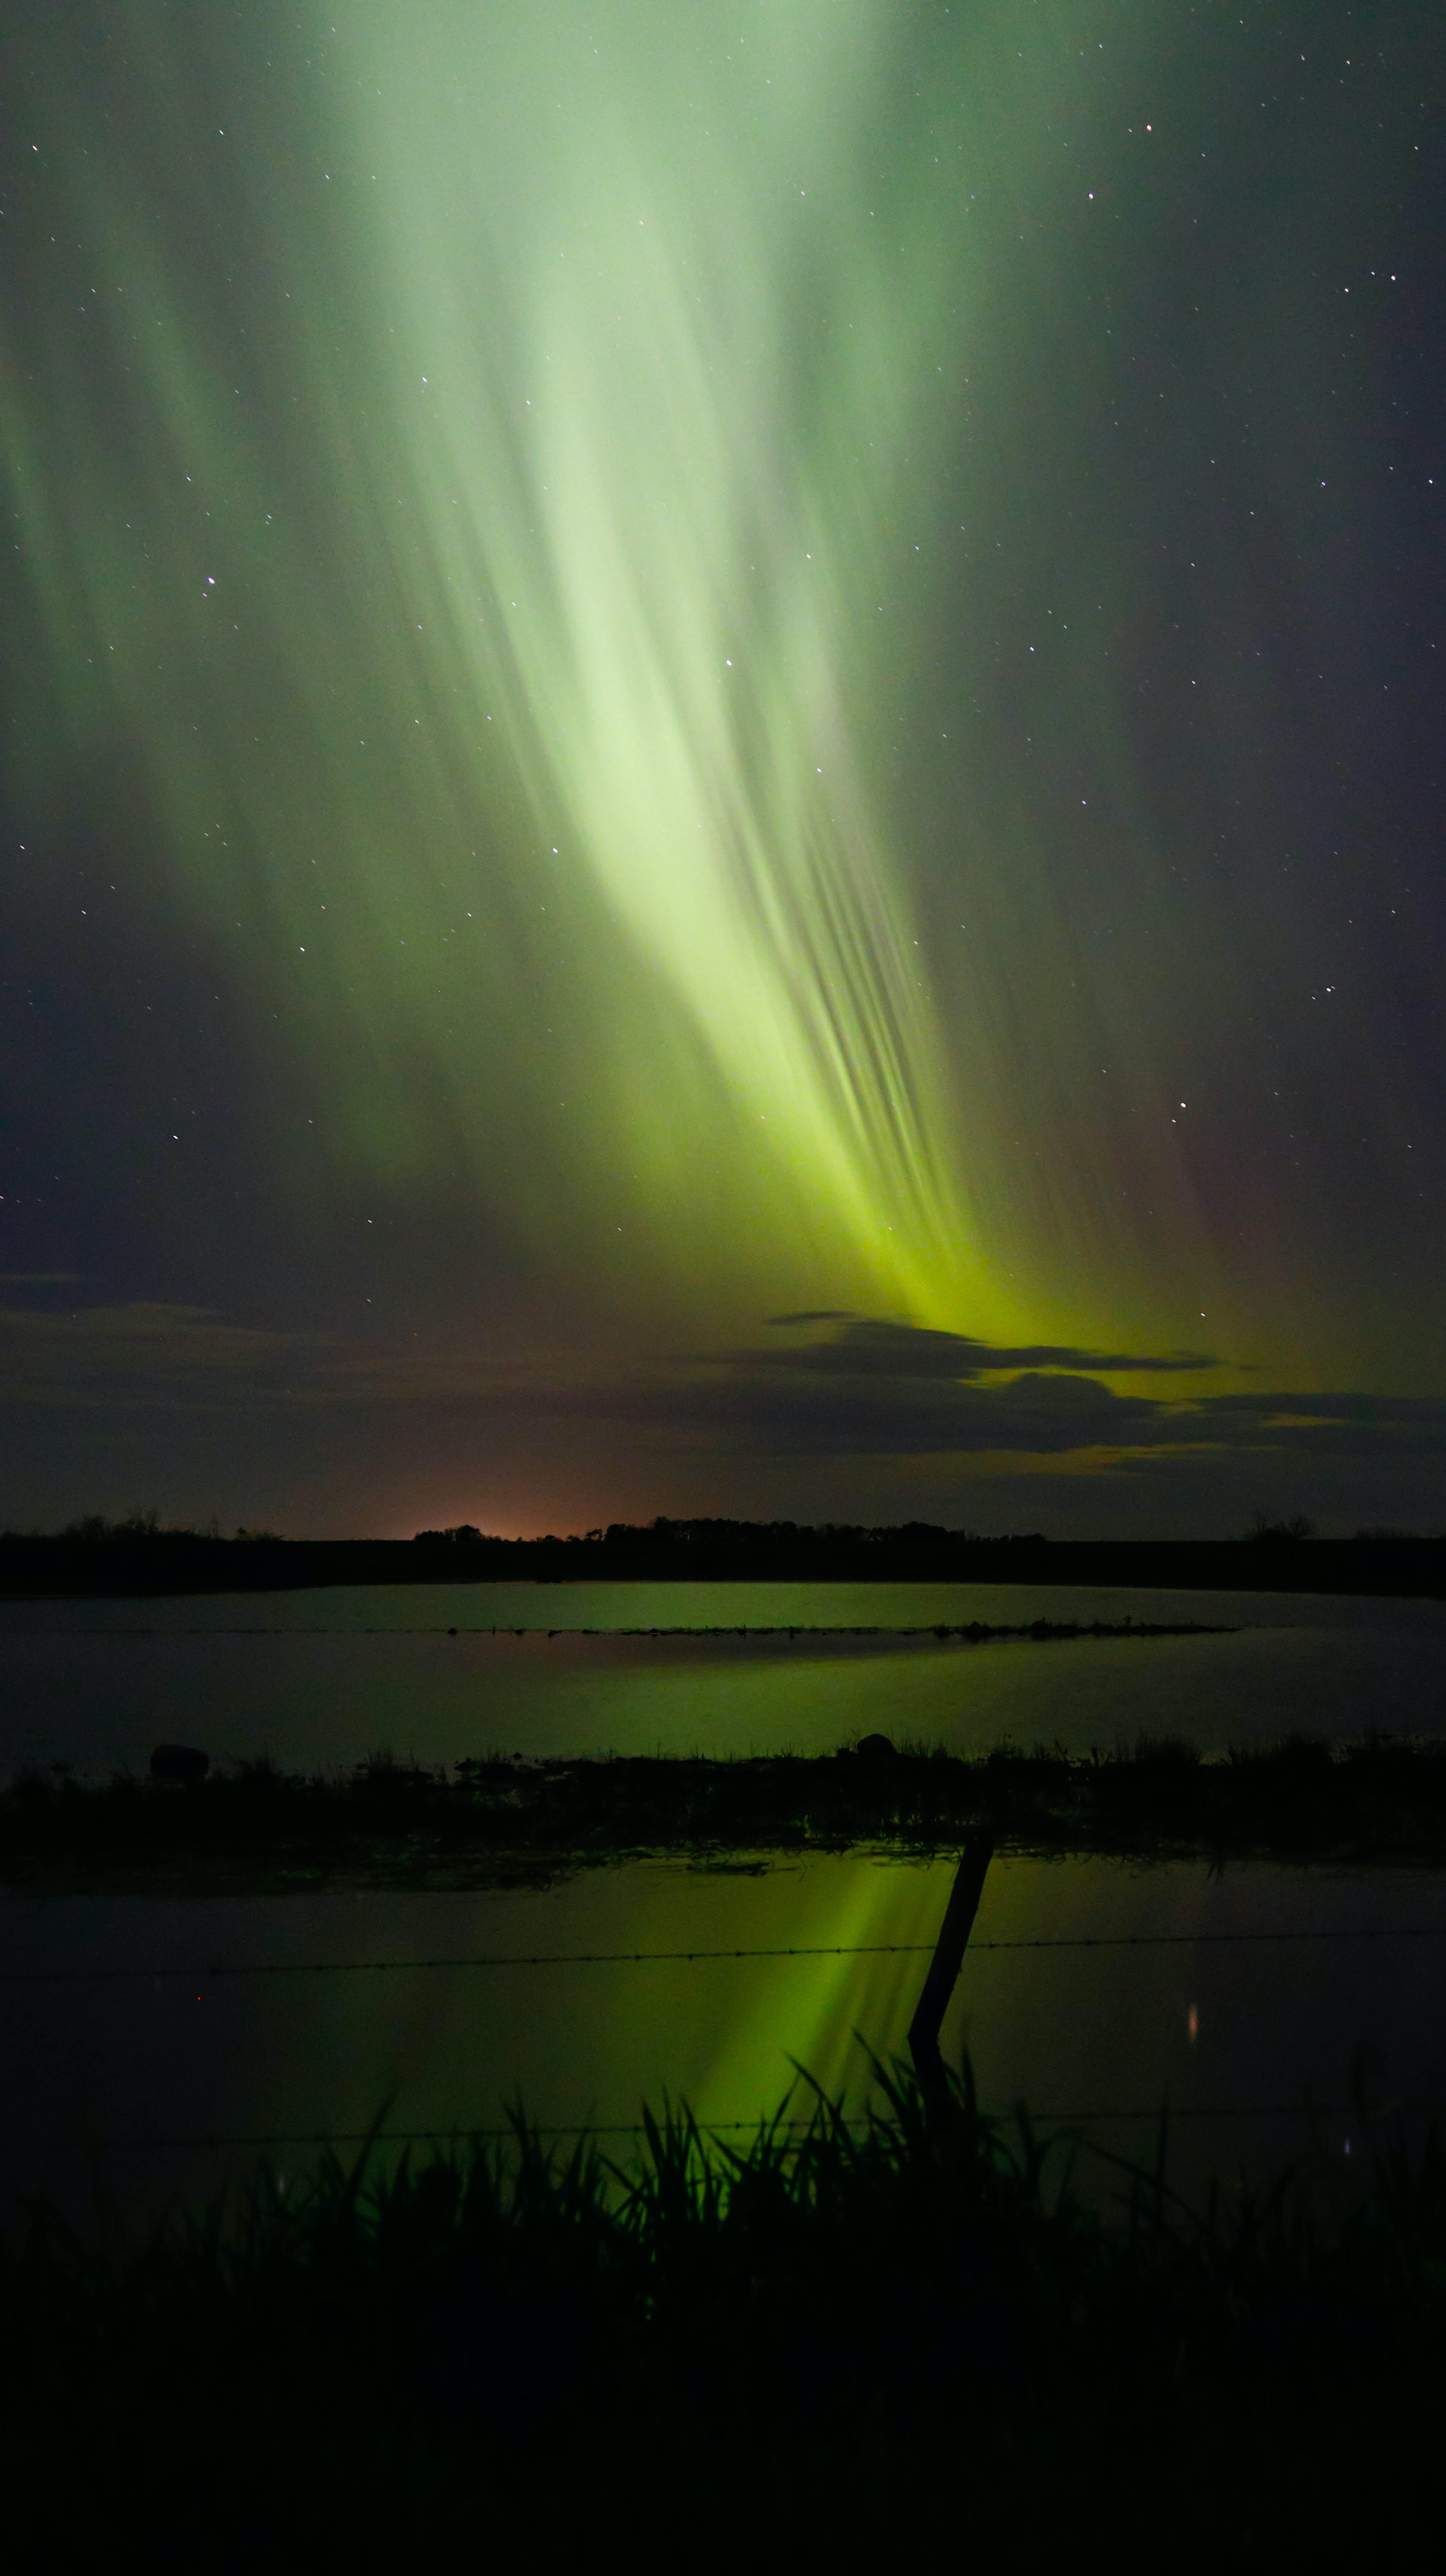 Beautiful green northern lights in the night sky above a wire fence